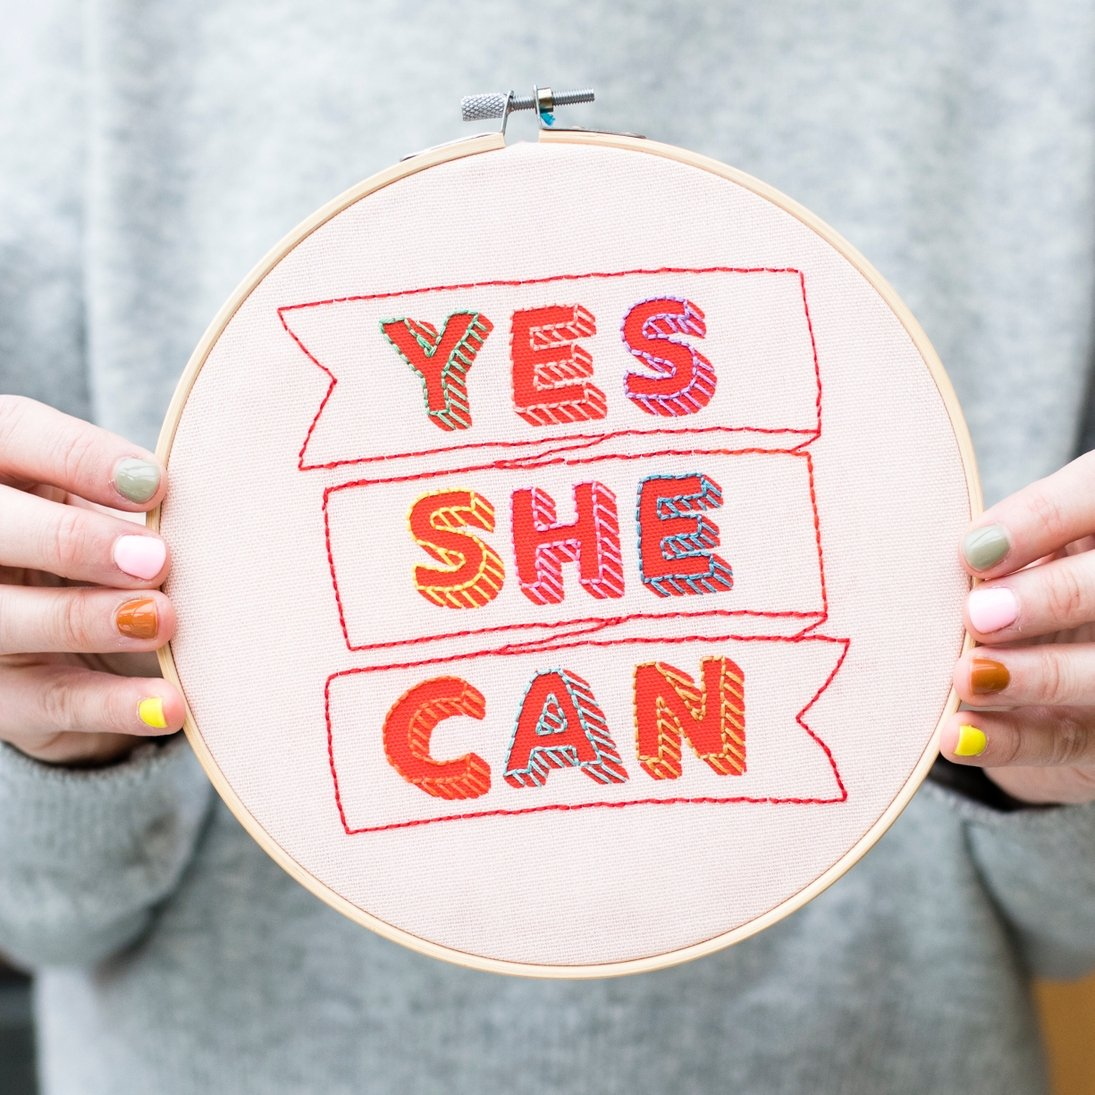 Yes She Can Embroidery Hoop Kit - Pink and Red